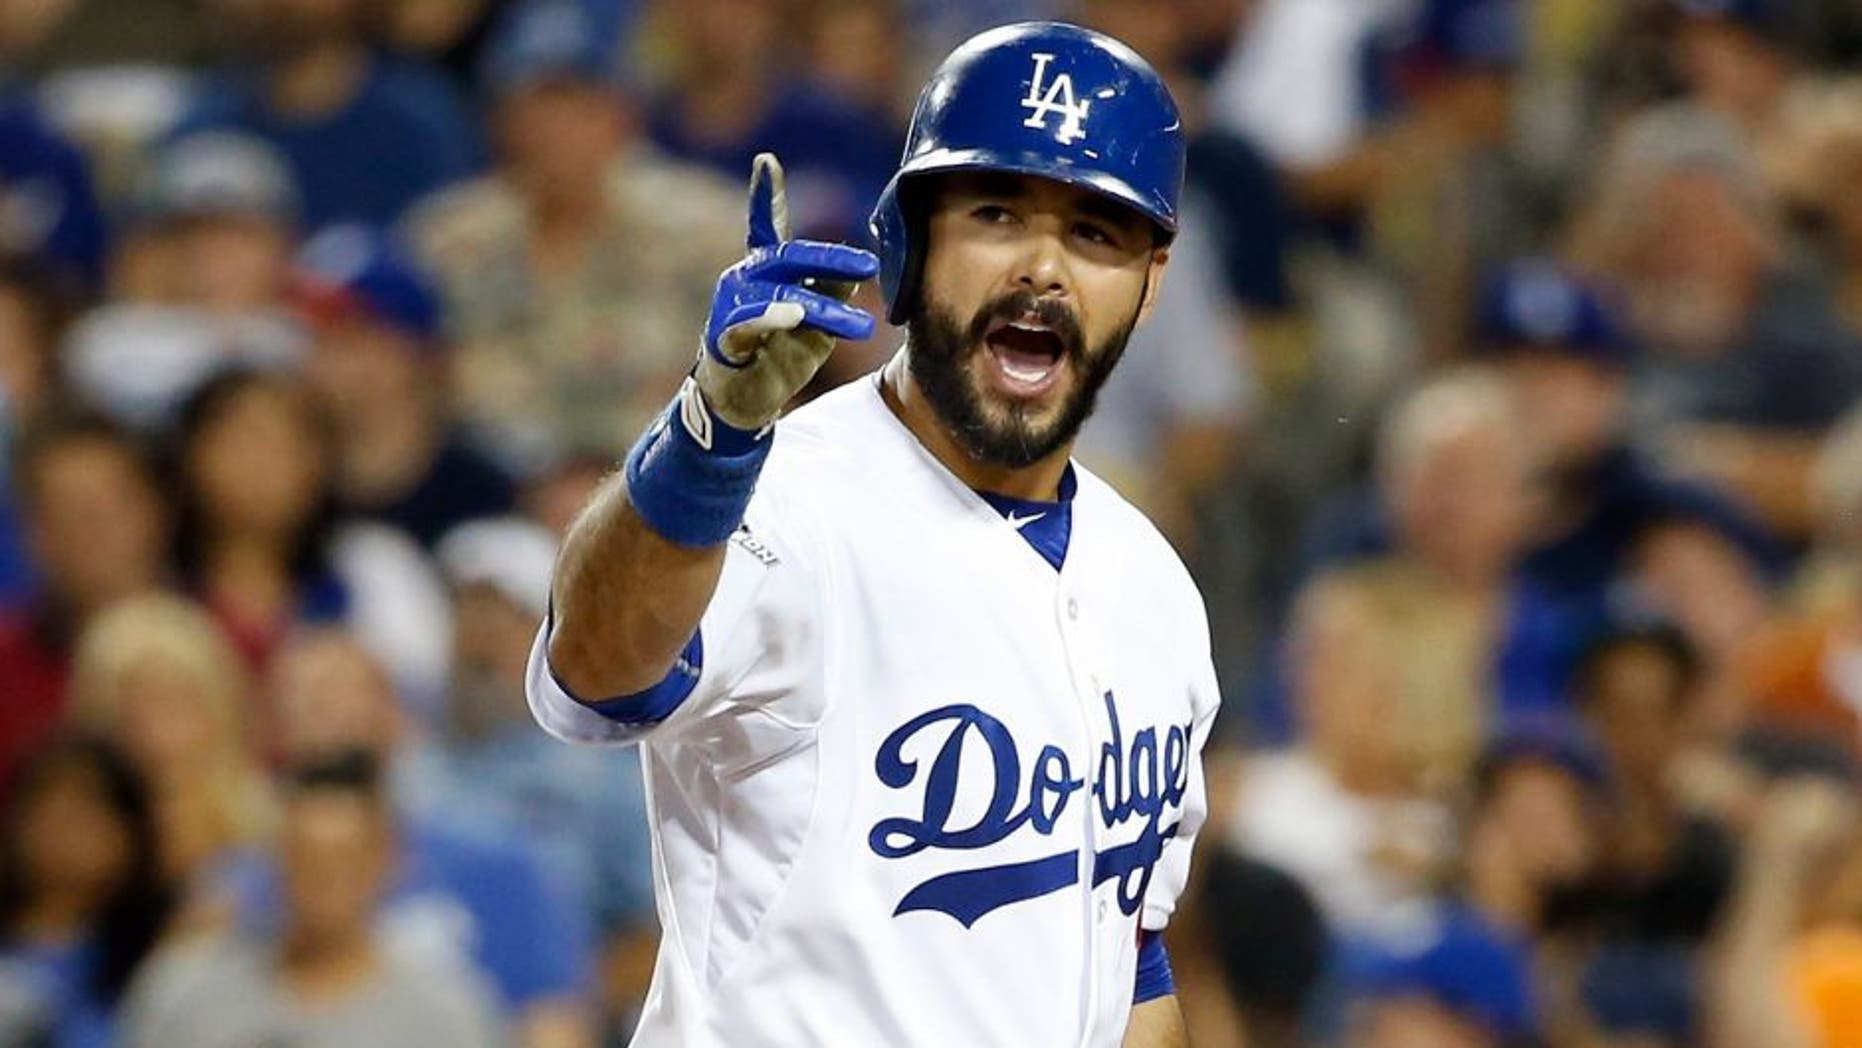 LOS ANGELES, CA - OCTOBER 09: Andre Ethier #16 of the Los Angeles Dodgers reacts after striking out to home plate umpire Alan Porter #64 in game one of the National League Division Series against the New York Mets at Dodger Stadium on October 9, 2015 in Los Angeles, California. (Photo by Sean M. Haffey/Getty Images)